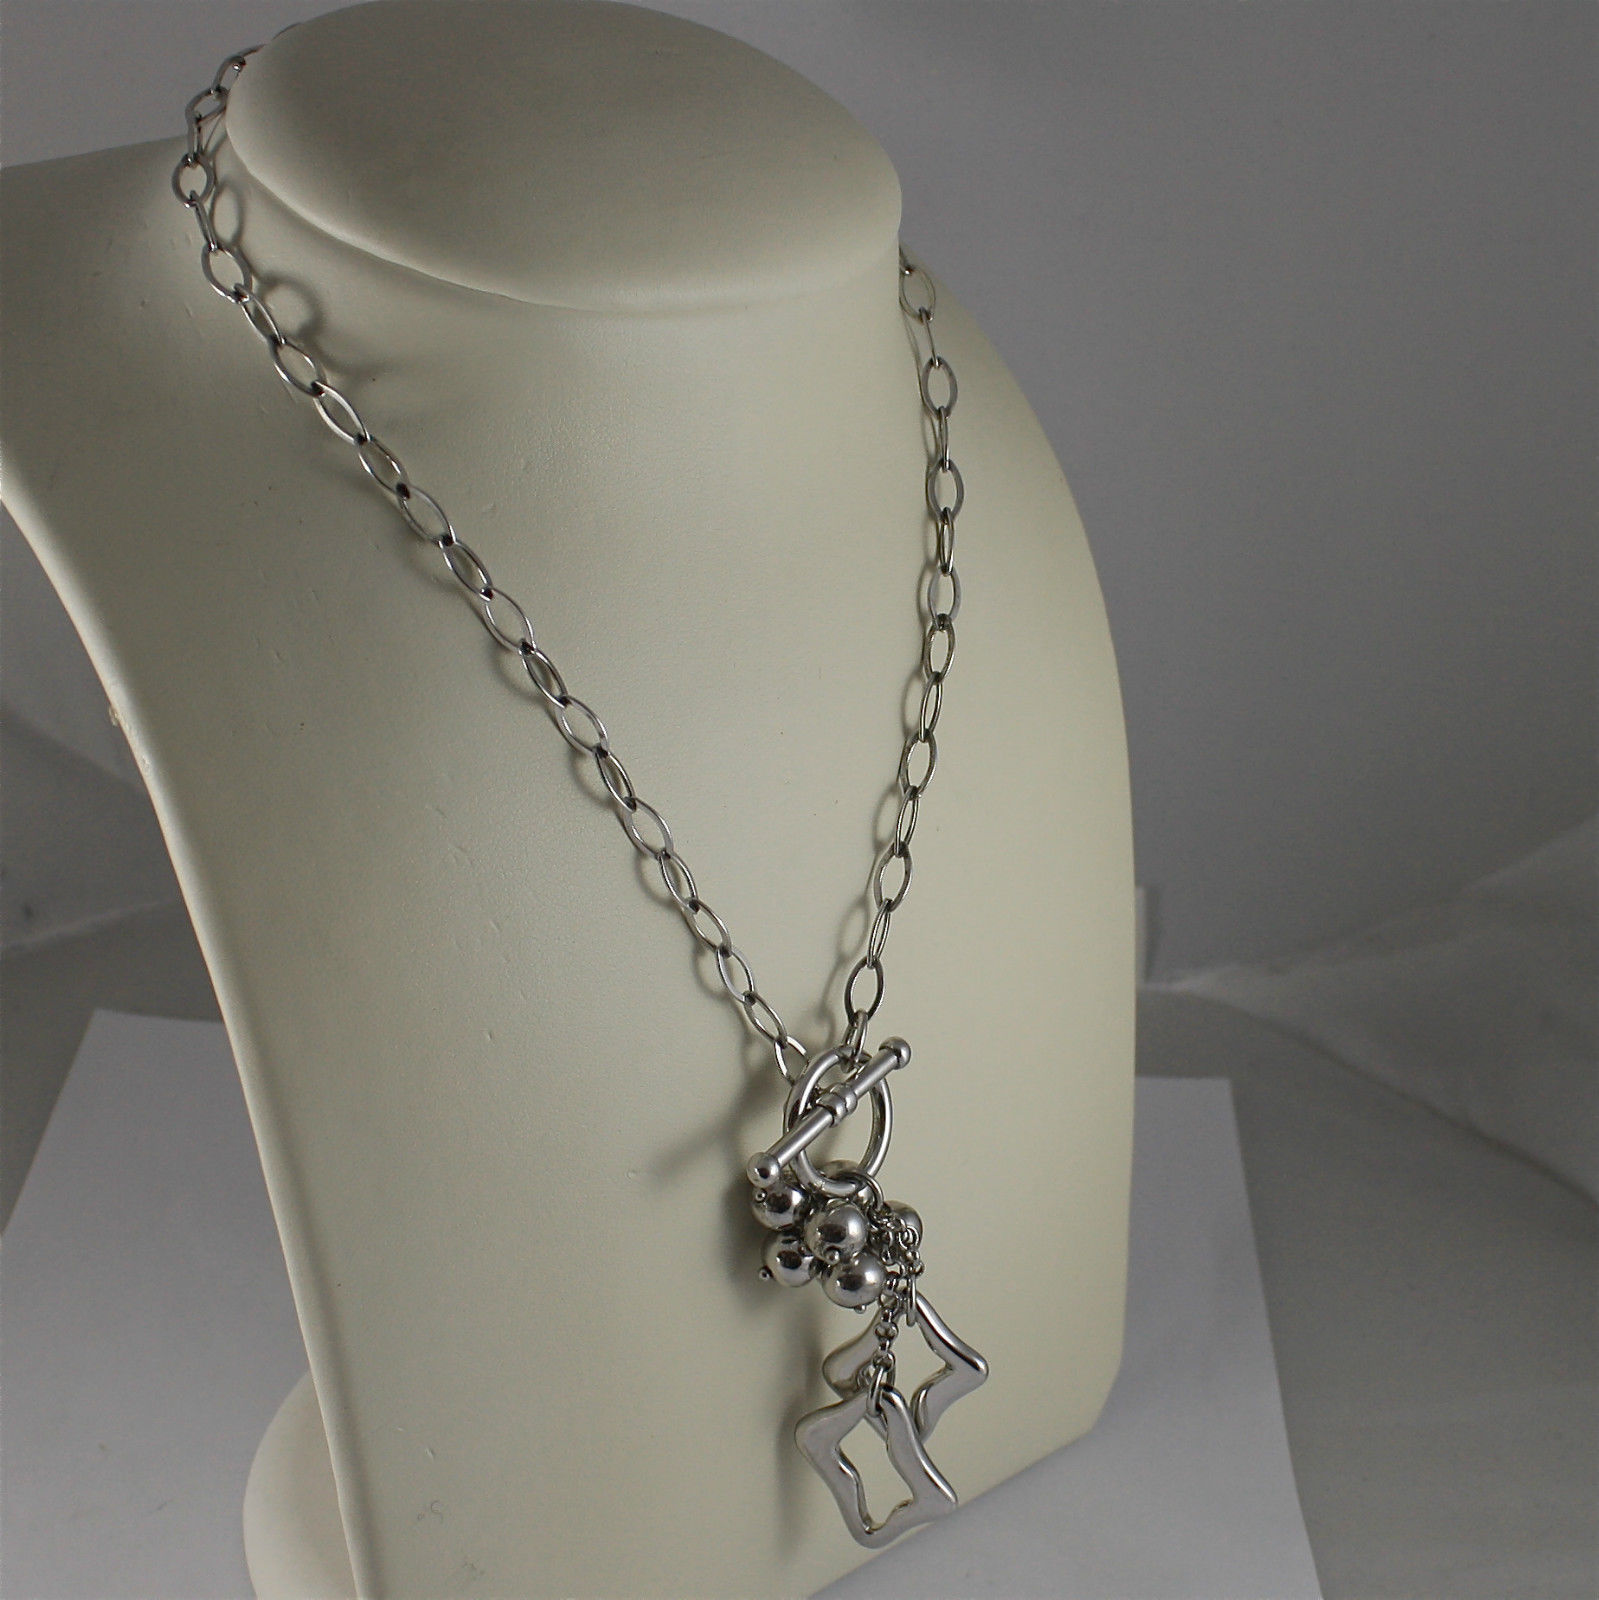 .925 RHODIUM SILVER NECKLACE, CENTRAL BALL'S GROOVE, TWO PENDANTS, OVAL MESH.